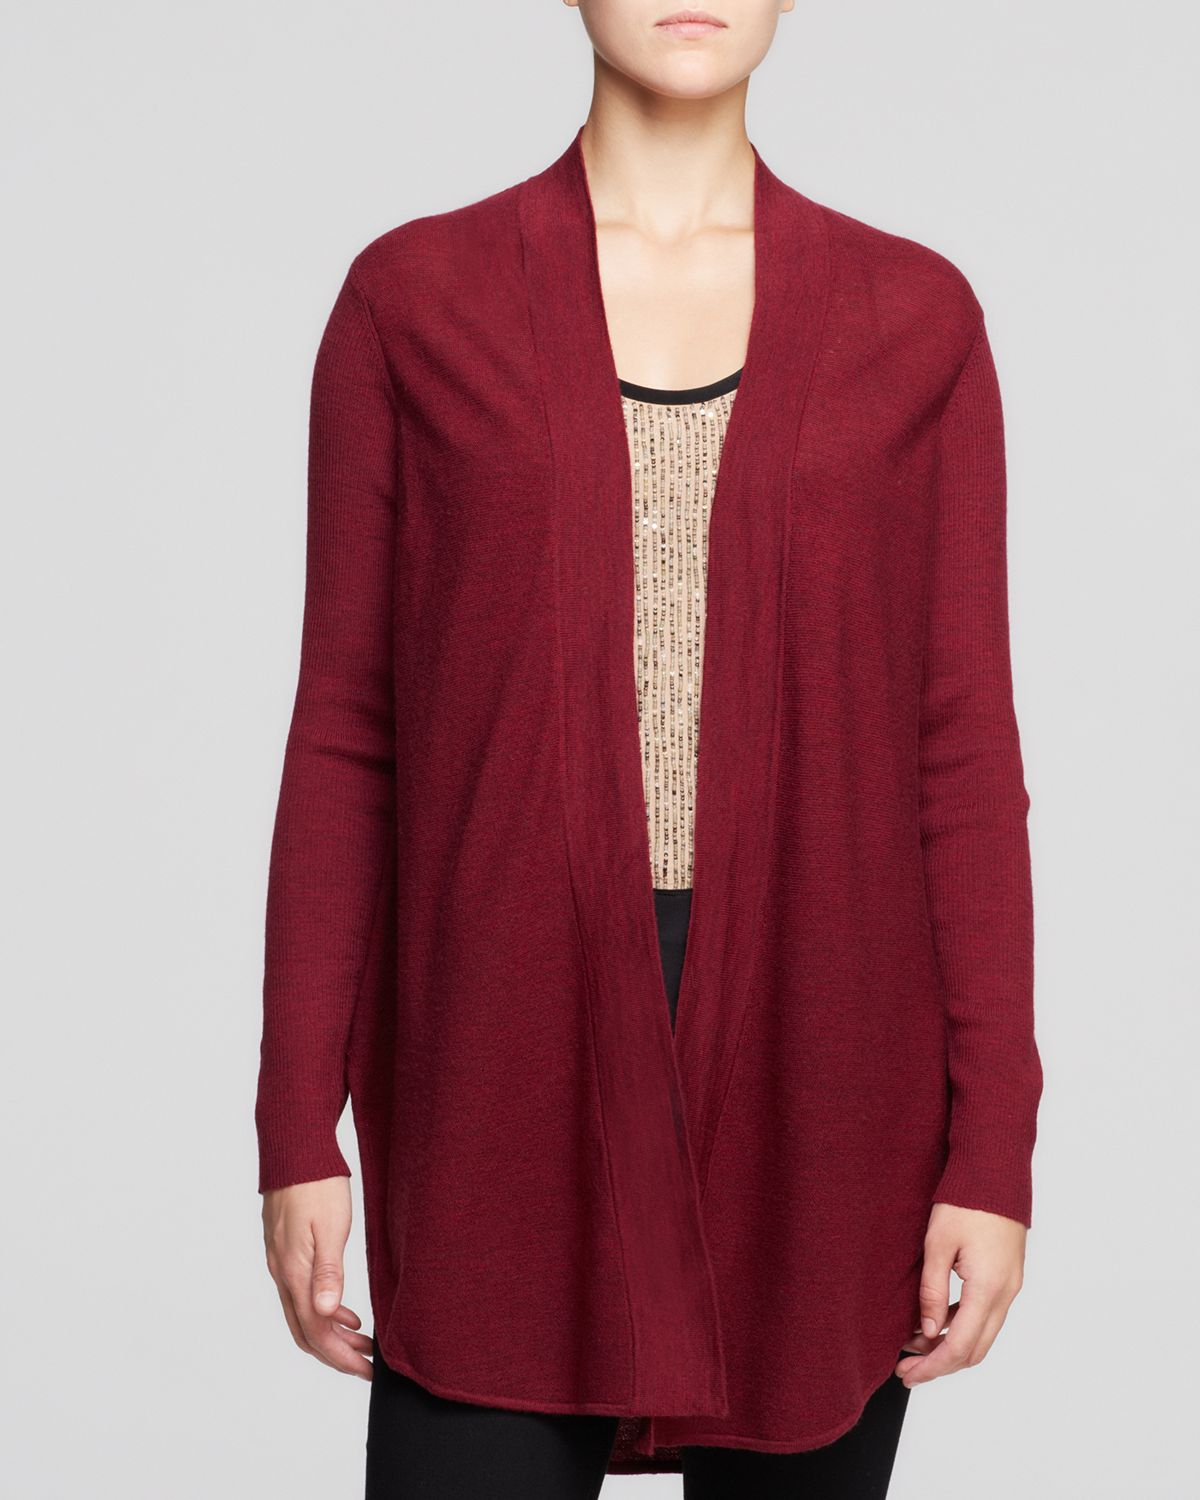 Eileen fisher Merino Wool Long Cardigan in Red | Lyst